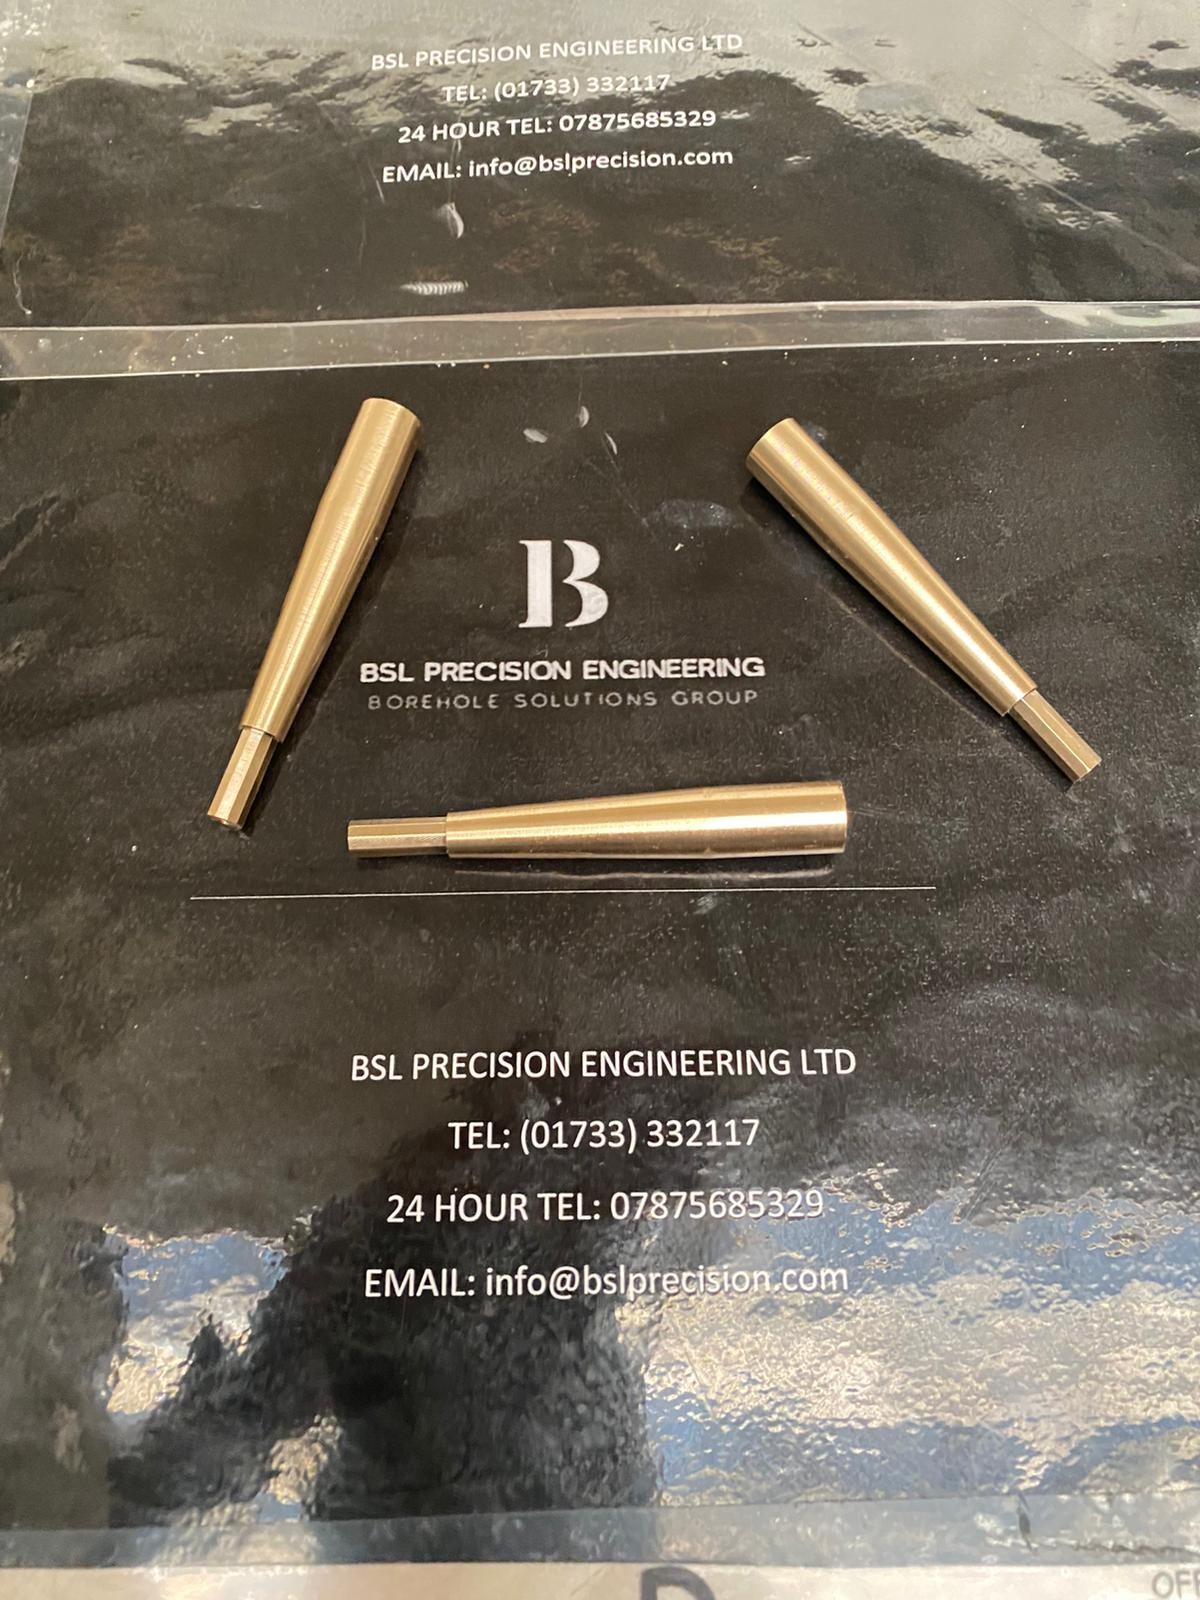 BSL Precision Engineering: Metal Engineering Parts For Ventilator Manufacture